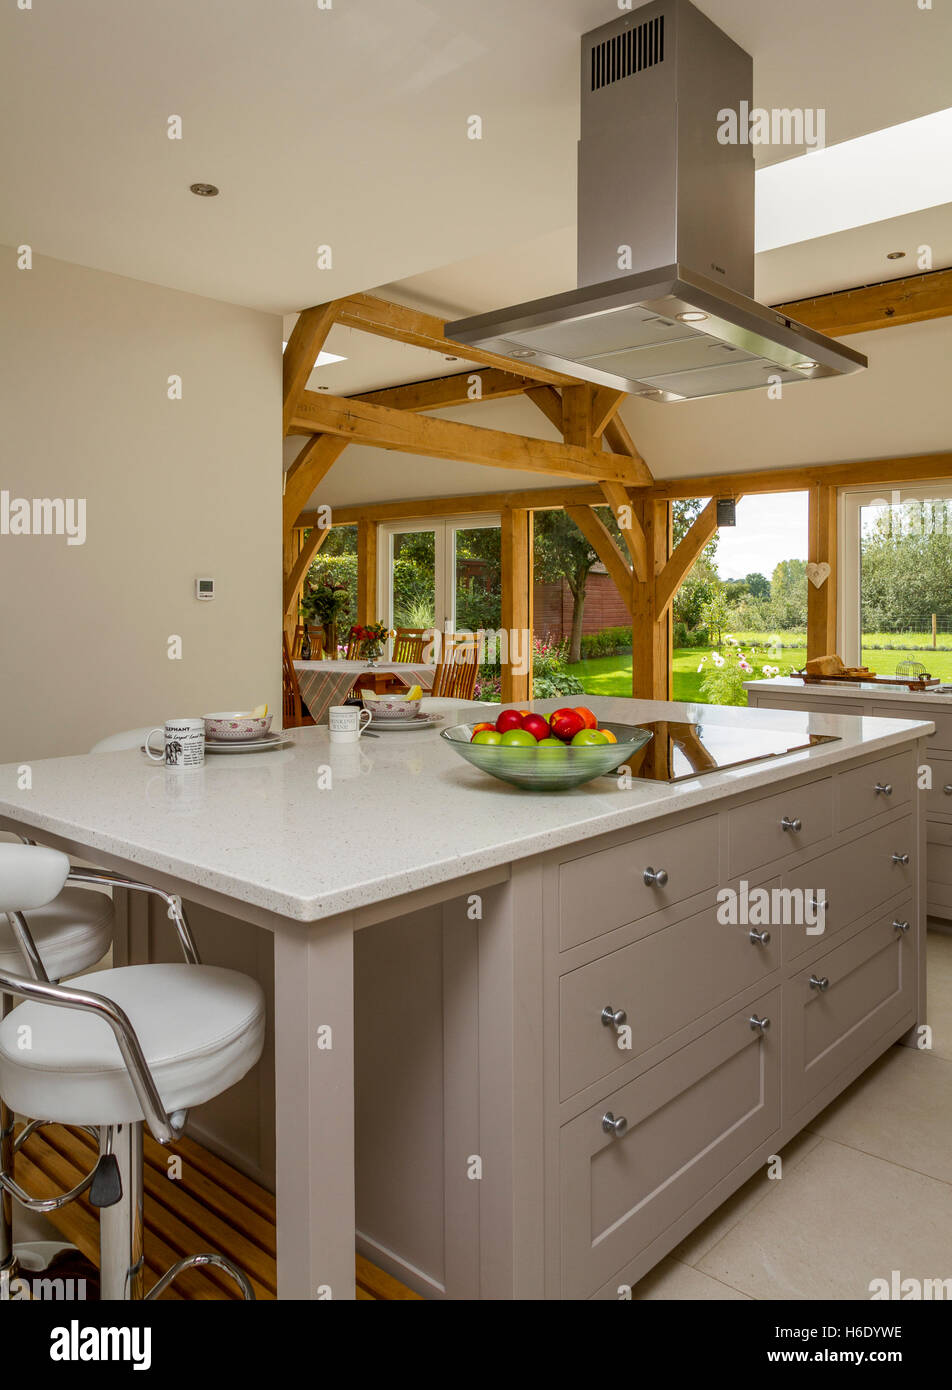 Genial Grey Painted Kitchen In Oak Framed Extension Stock Photo ...